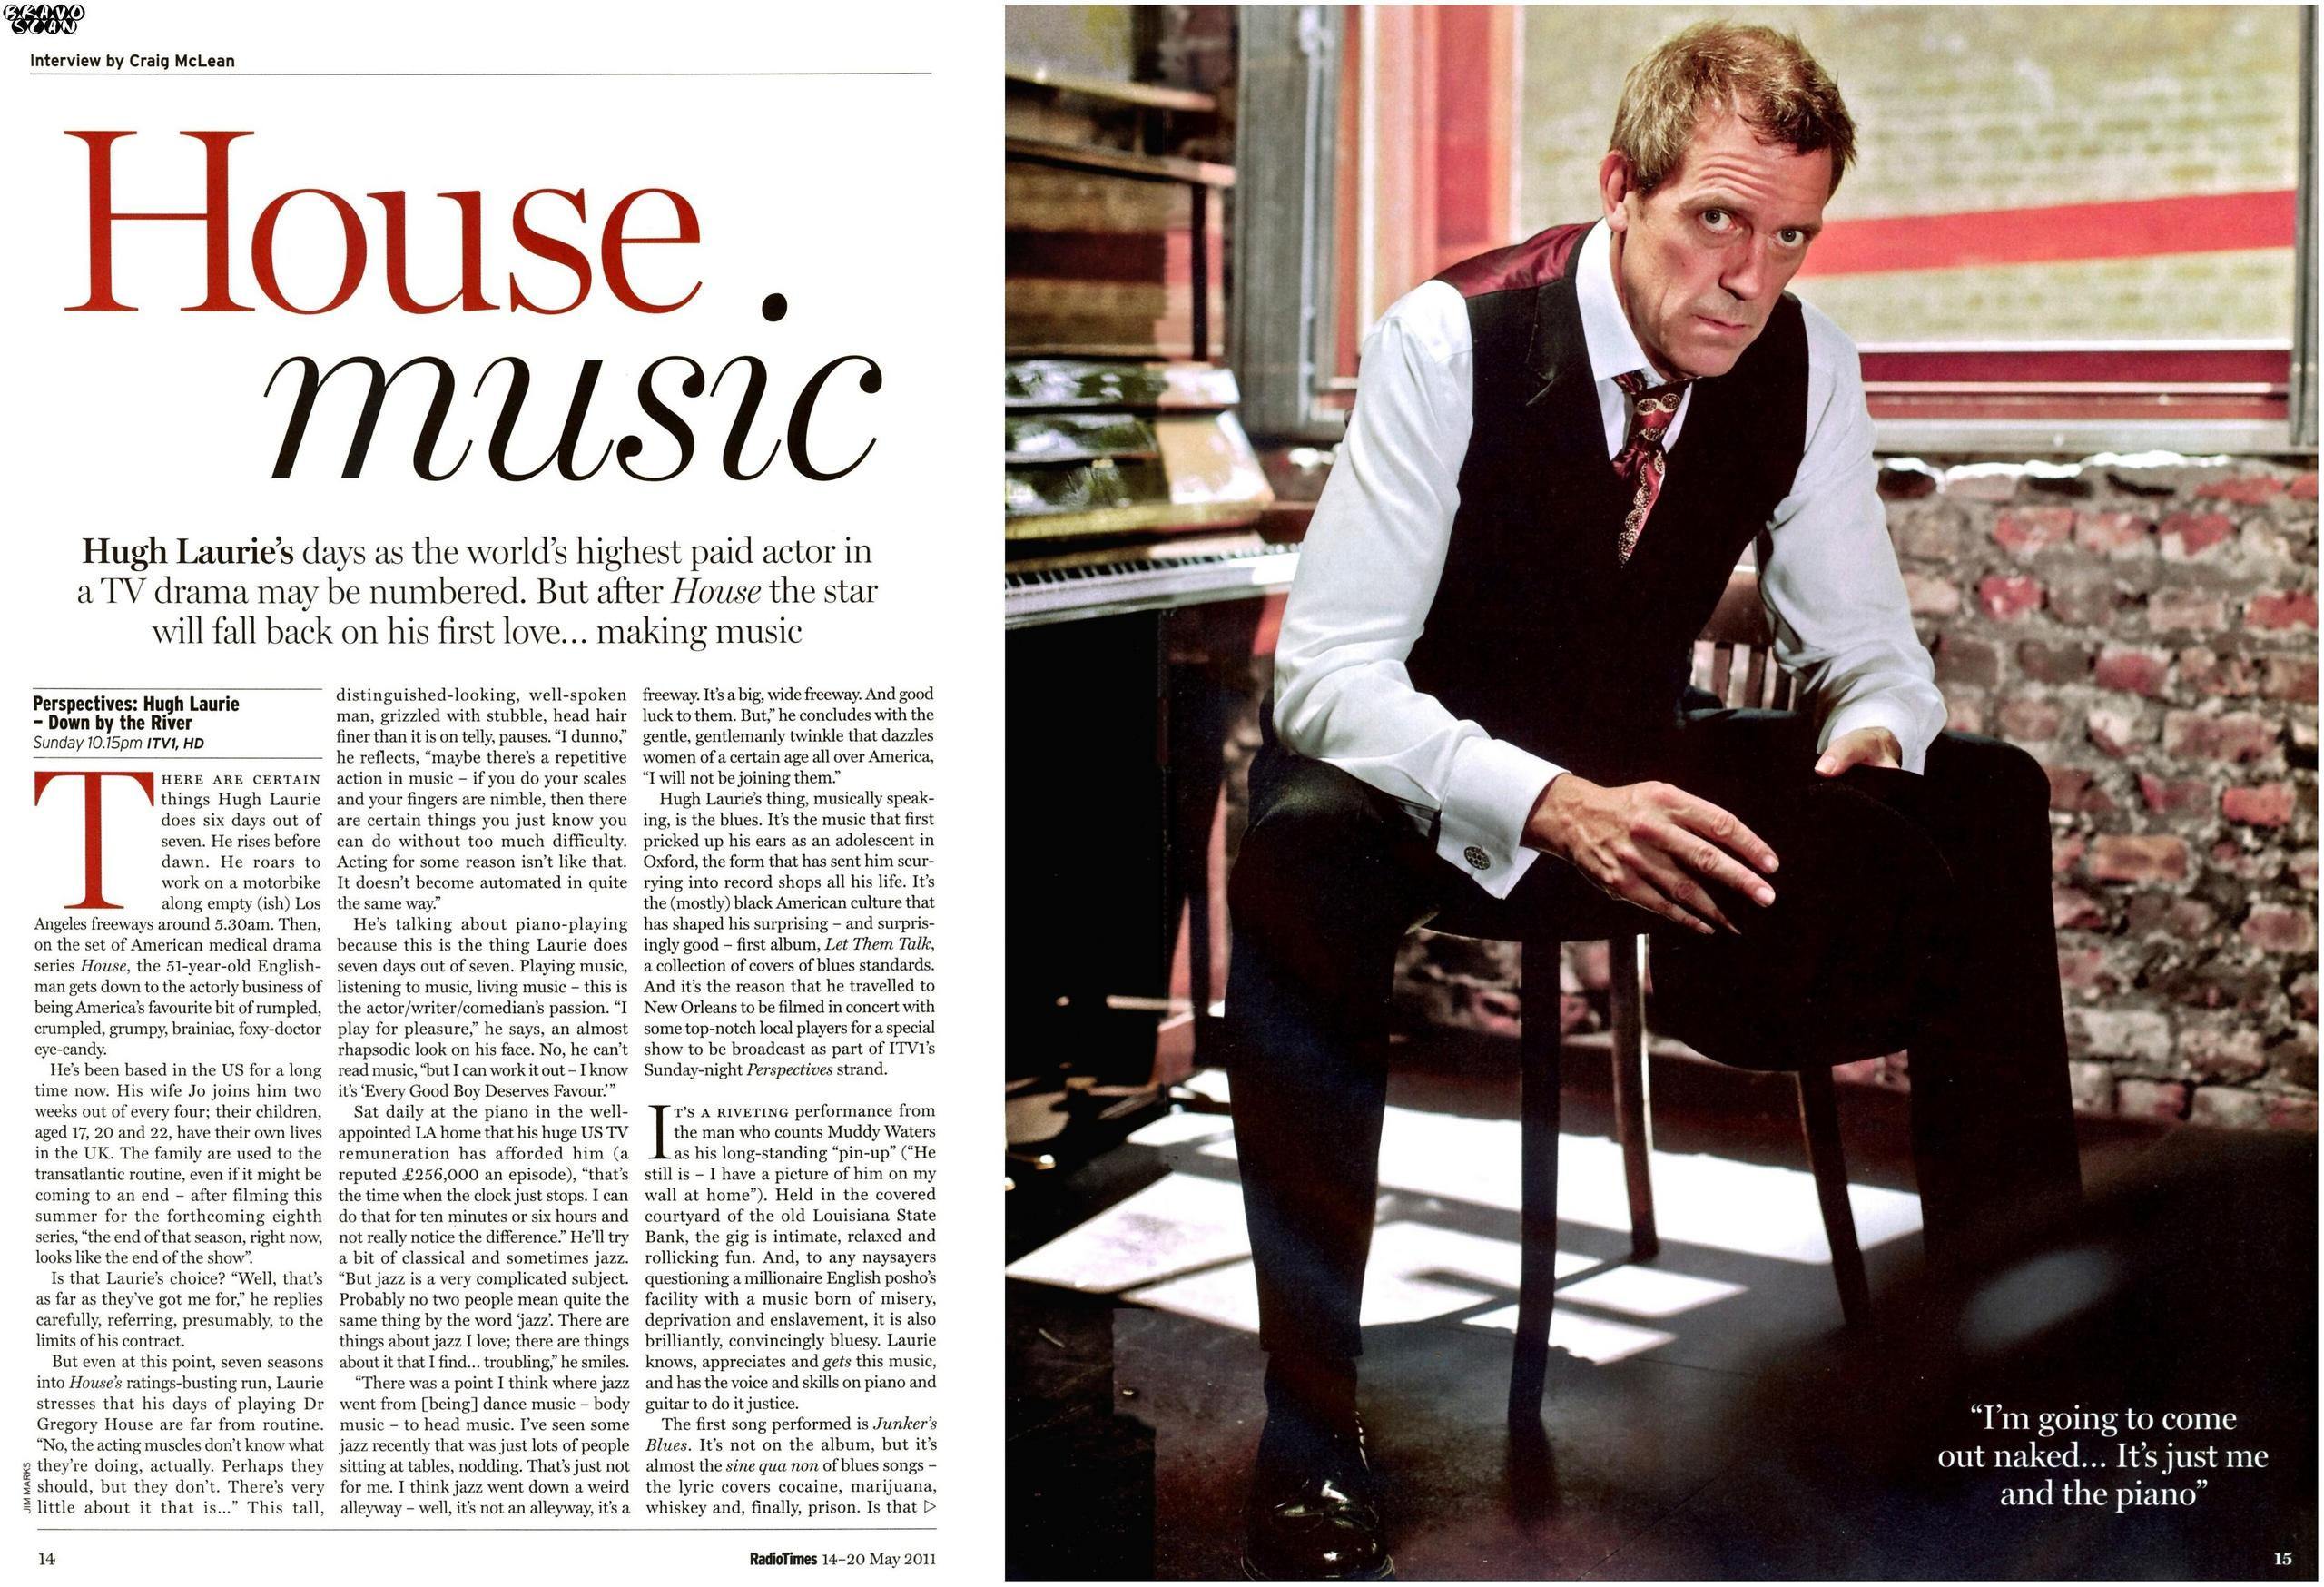 Hugh laurie news for House music radio